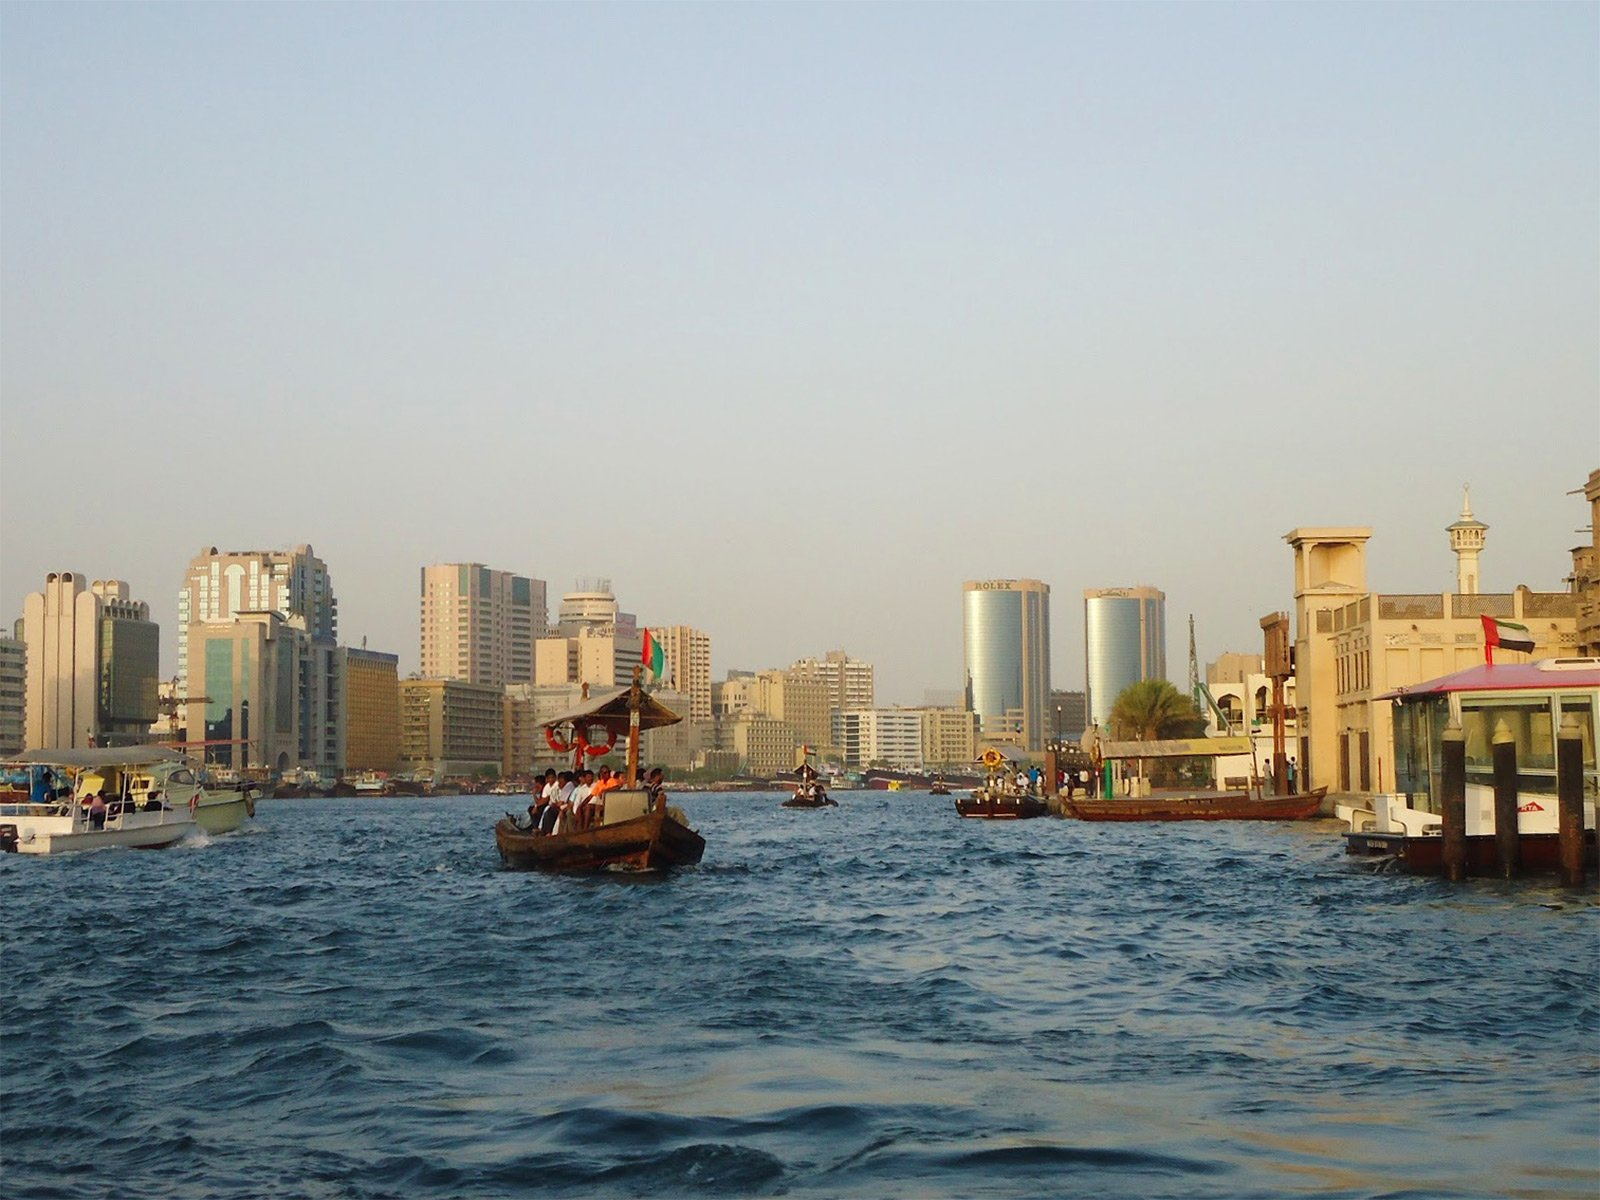 How to take an abra boat in Dubai